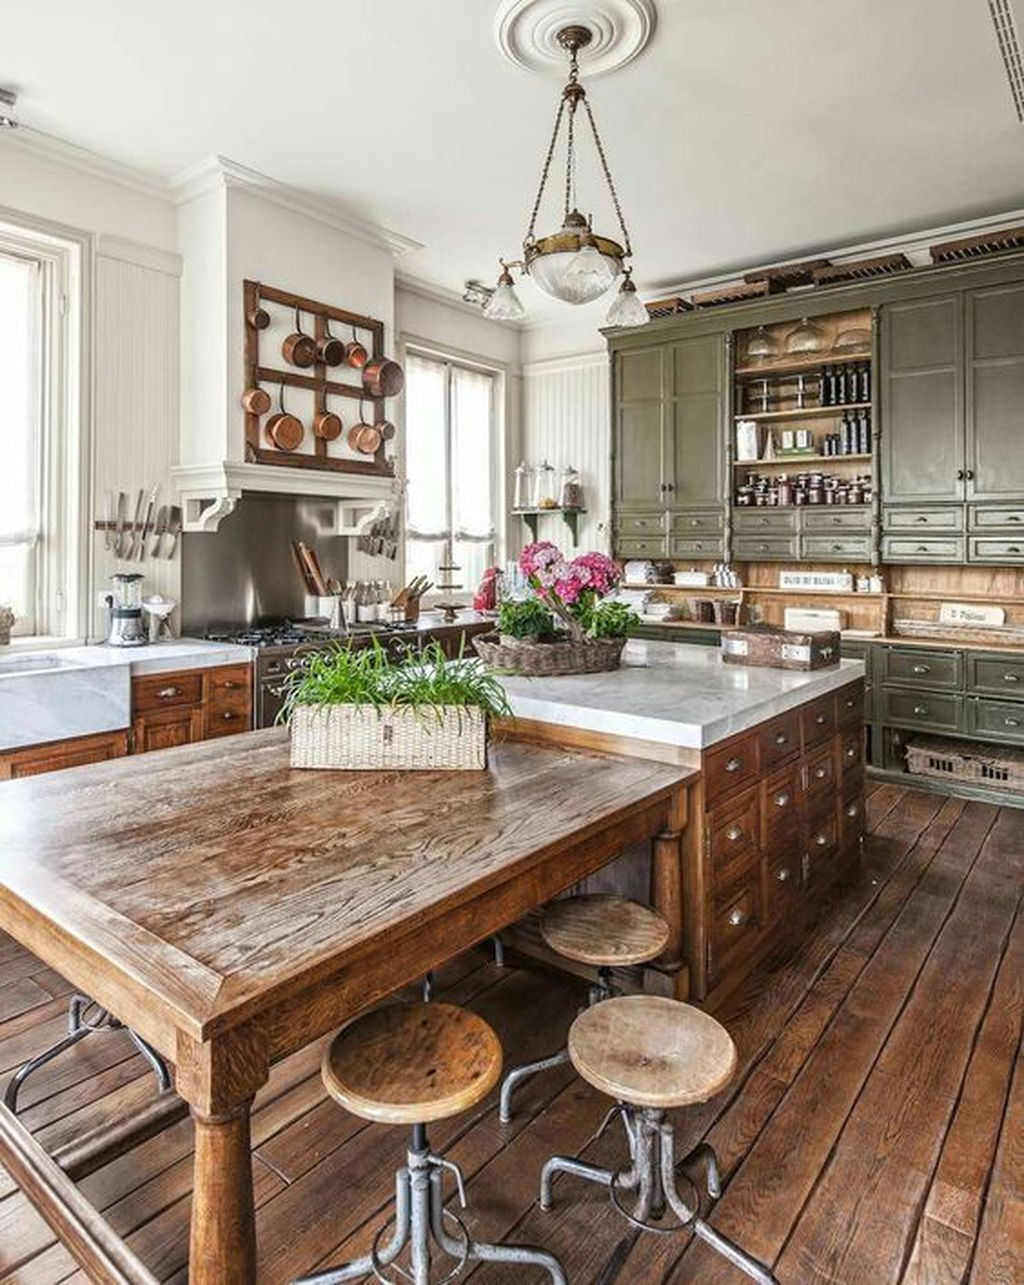 25 Stress-Free Rustic Kitchen Ideas (All Are Marvellous!) - 873372A8A6D1C57C1167Adaa62A67971